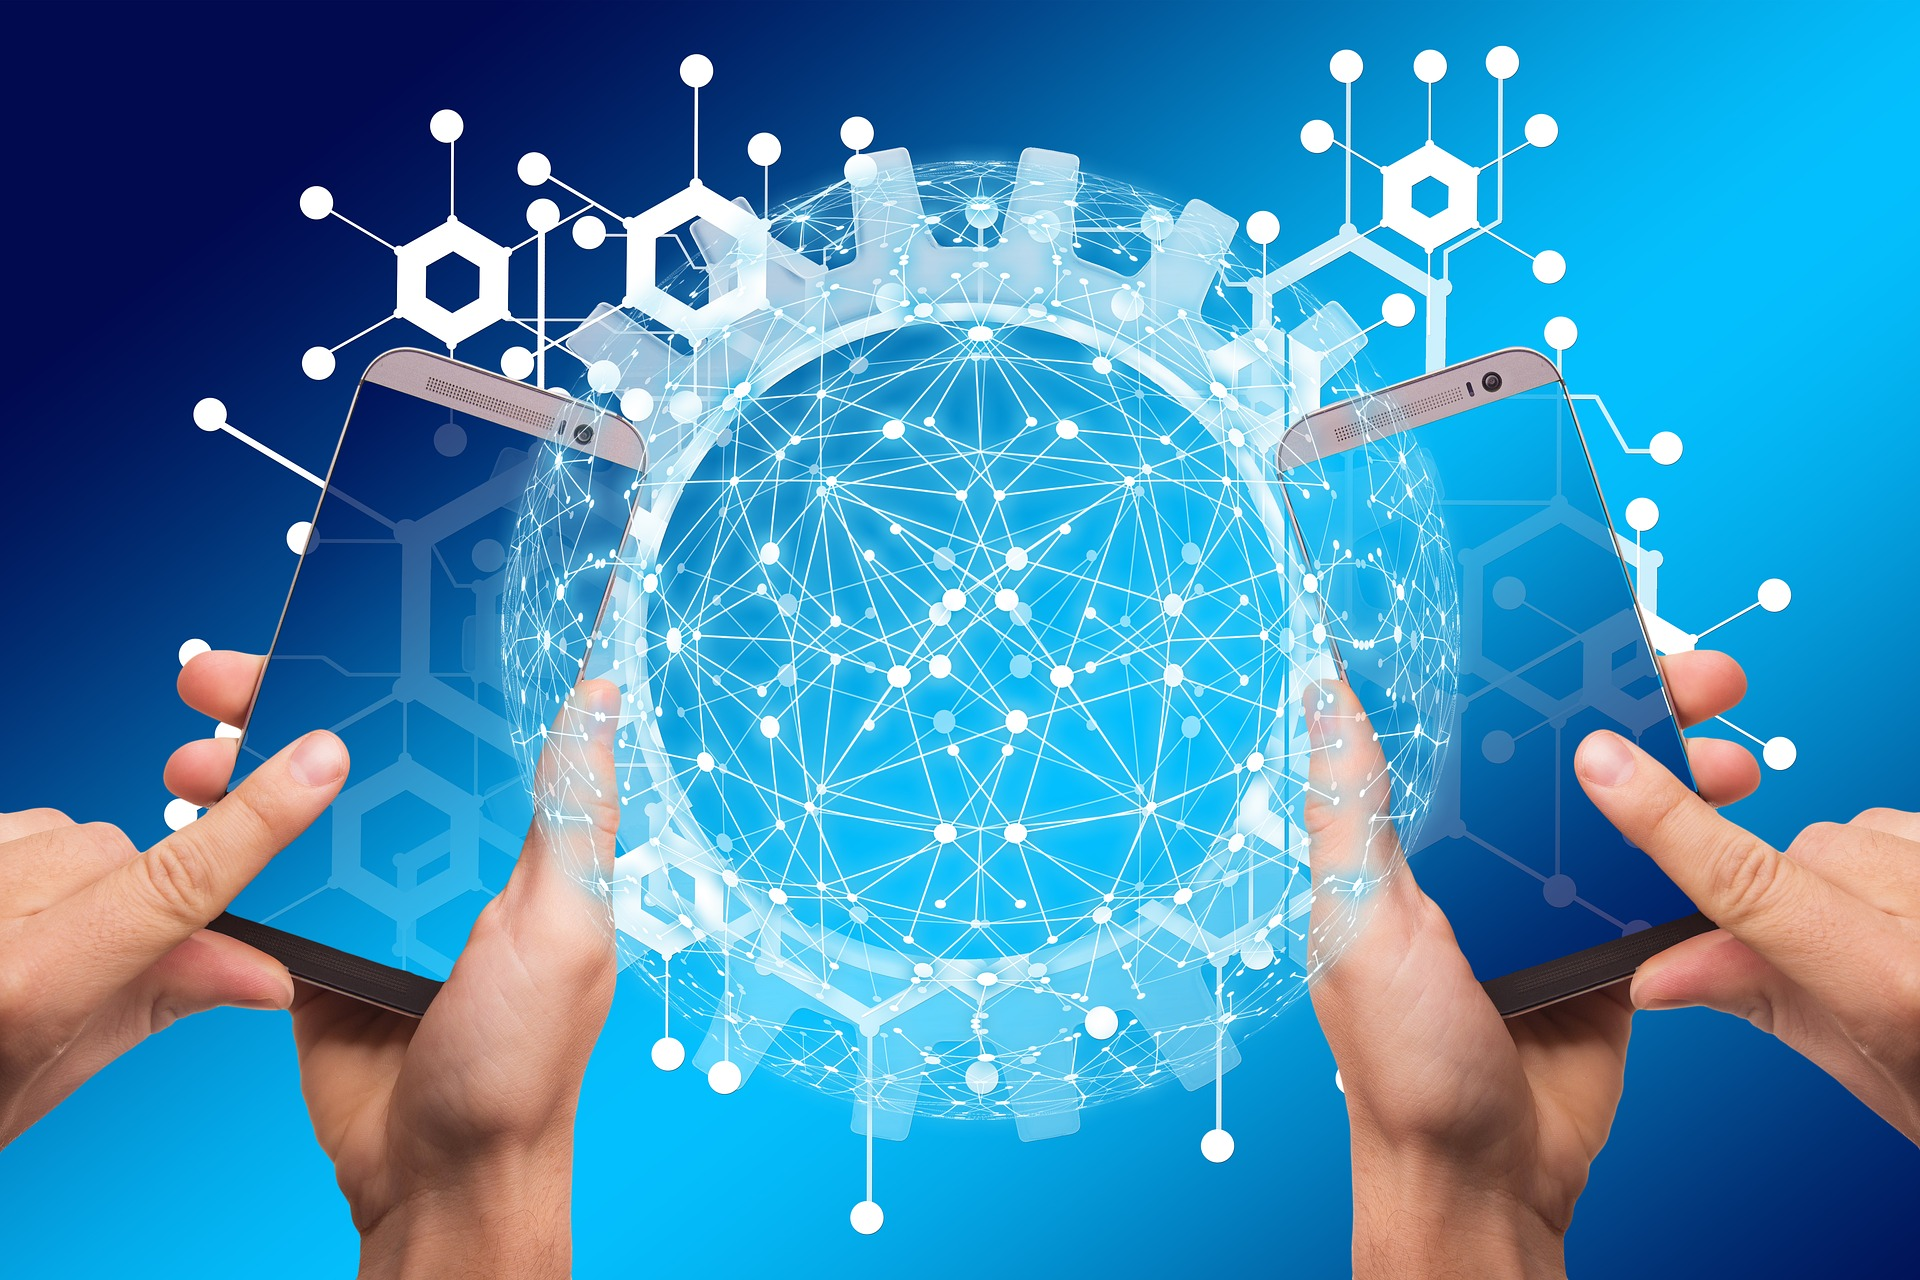 Cellular phones and network